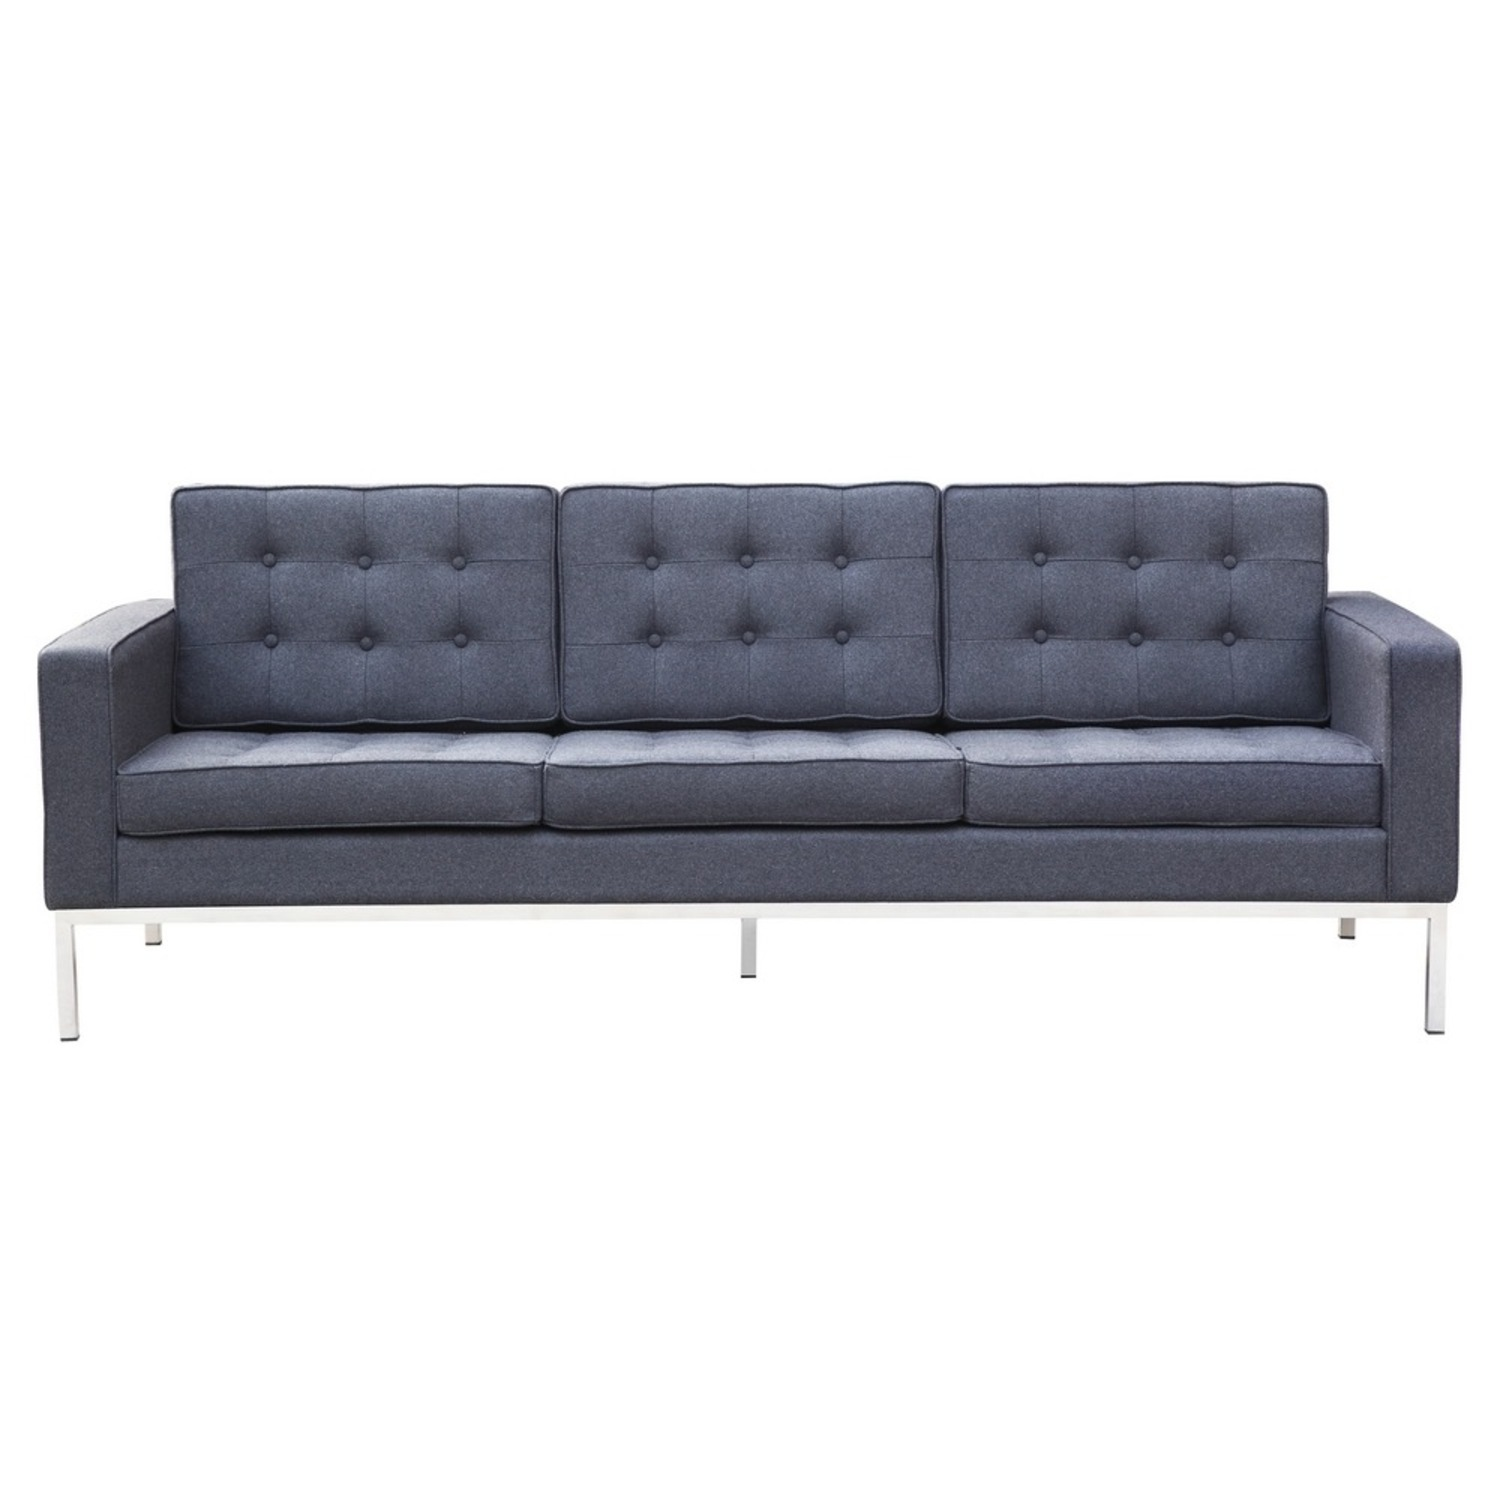 Contemporary Sofa In Gray Wool Fabric - image-5